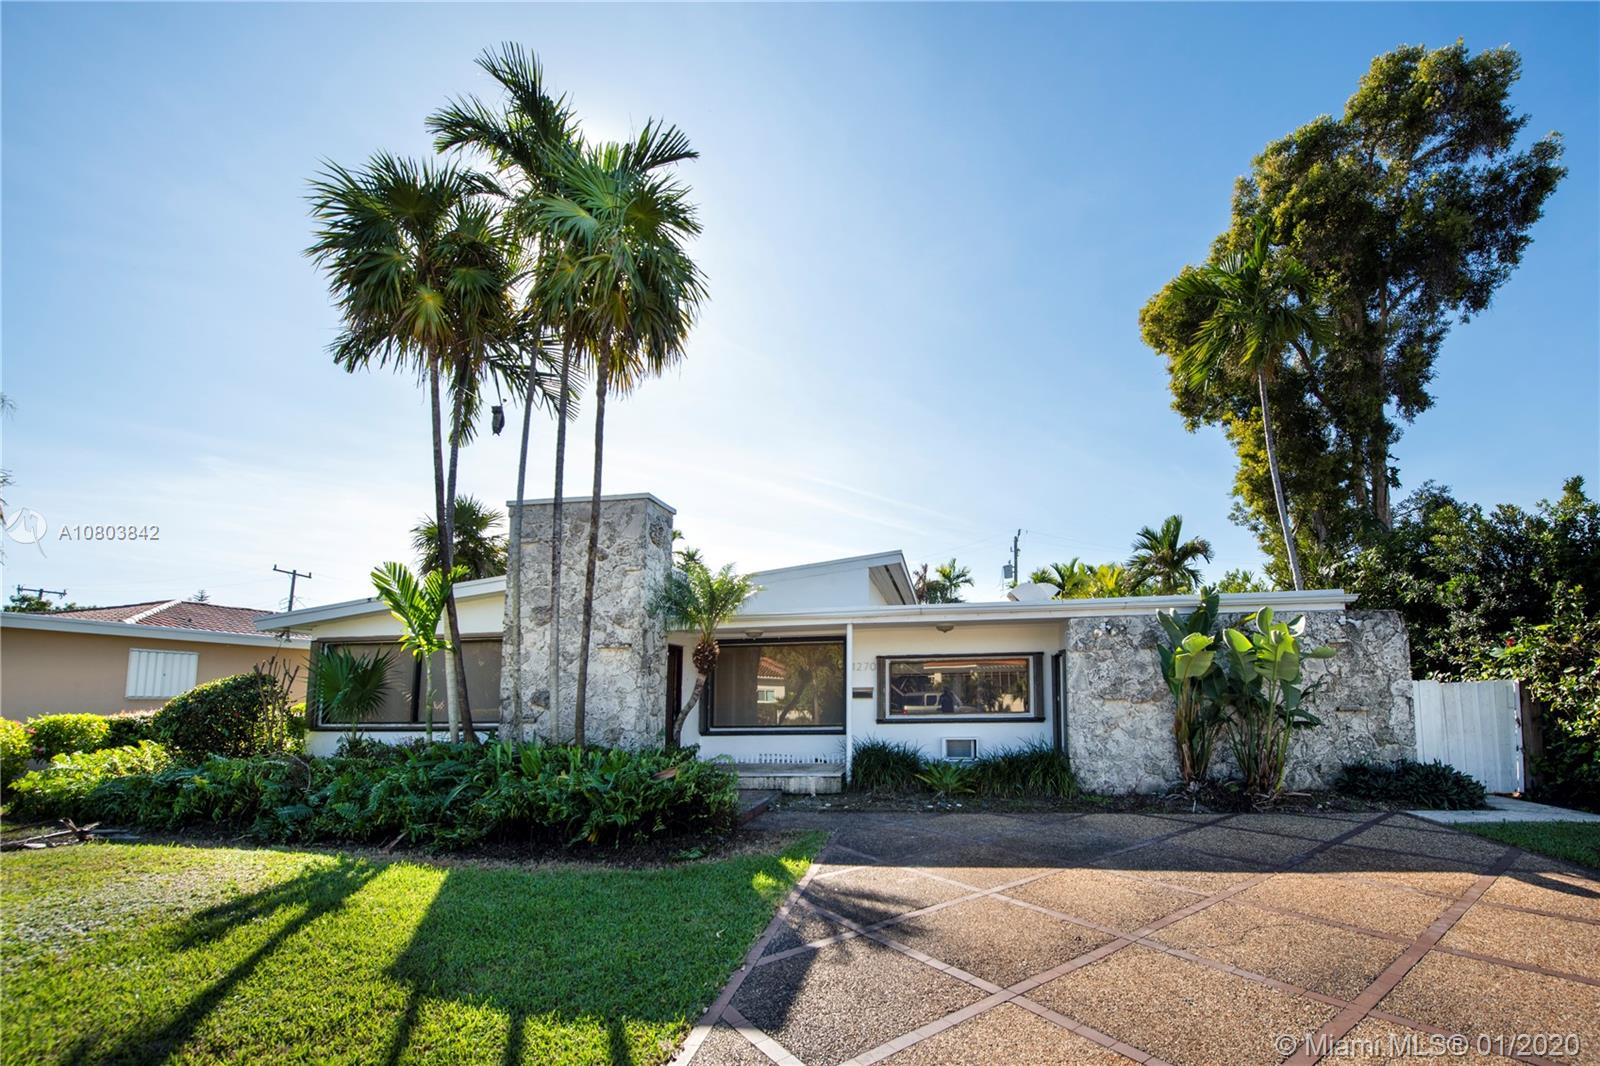 Big and spacious home located on wide 102nd Street at Bay Harbor Islands features 5 bedrooms and 4 baths. This great home has marble floors, kitchen with granite countertops, stainless steel appliances and washer and dryer. Lots of natural light in the living and dining room. Pool at the backyard and lots of space to entertain and play. Quite neighborhood with A+ school. Close to the beaches and Bal Harbour Shops. Call listing agent for showing and more details.